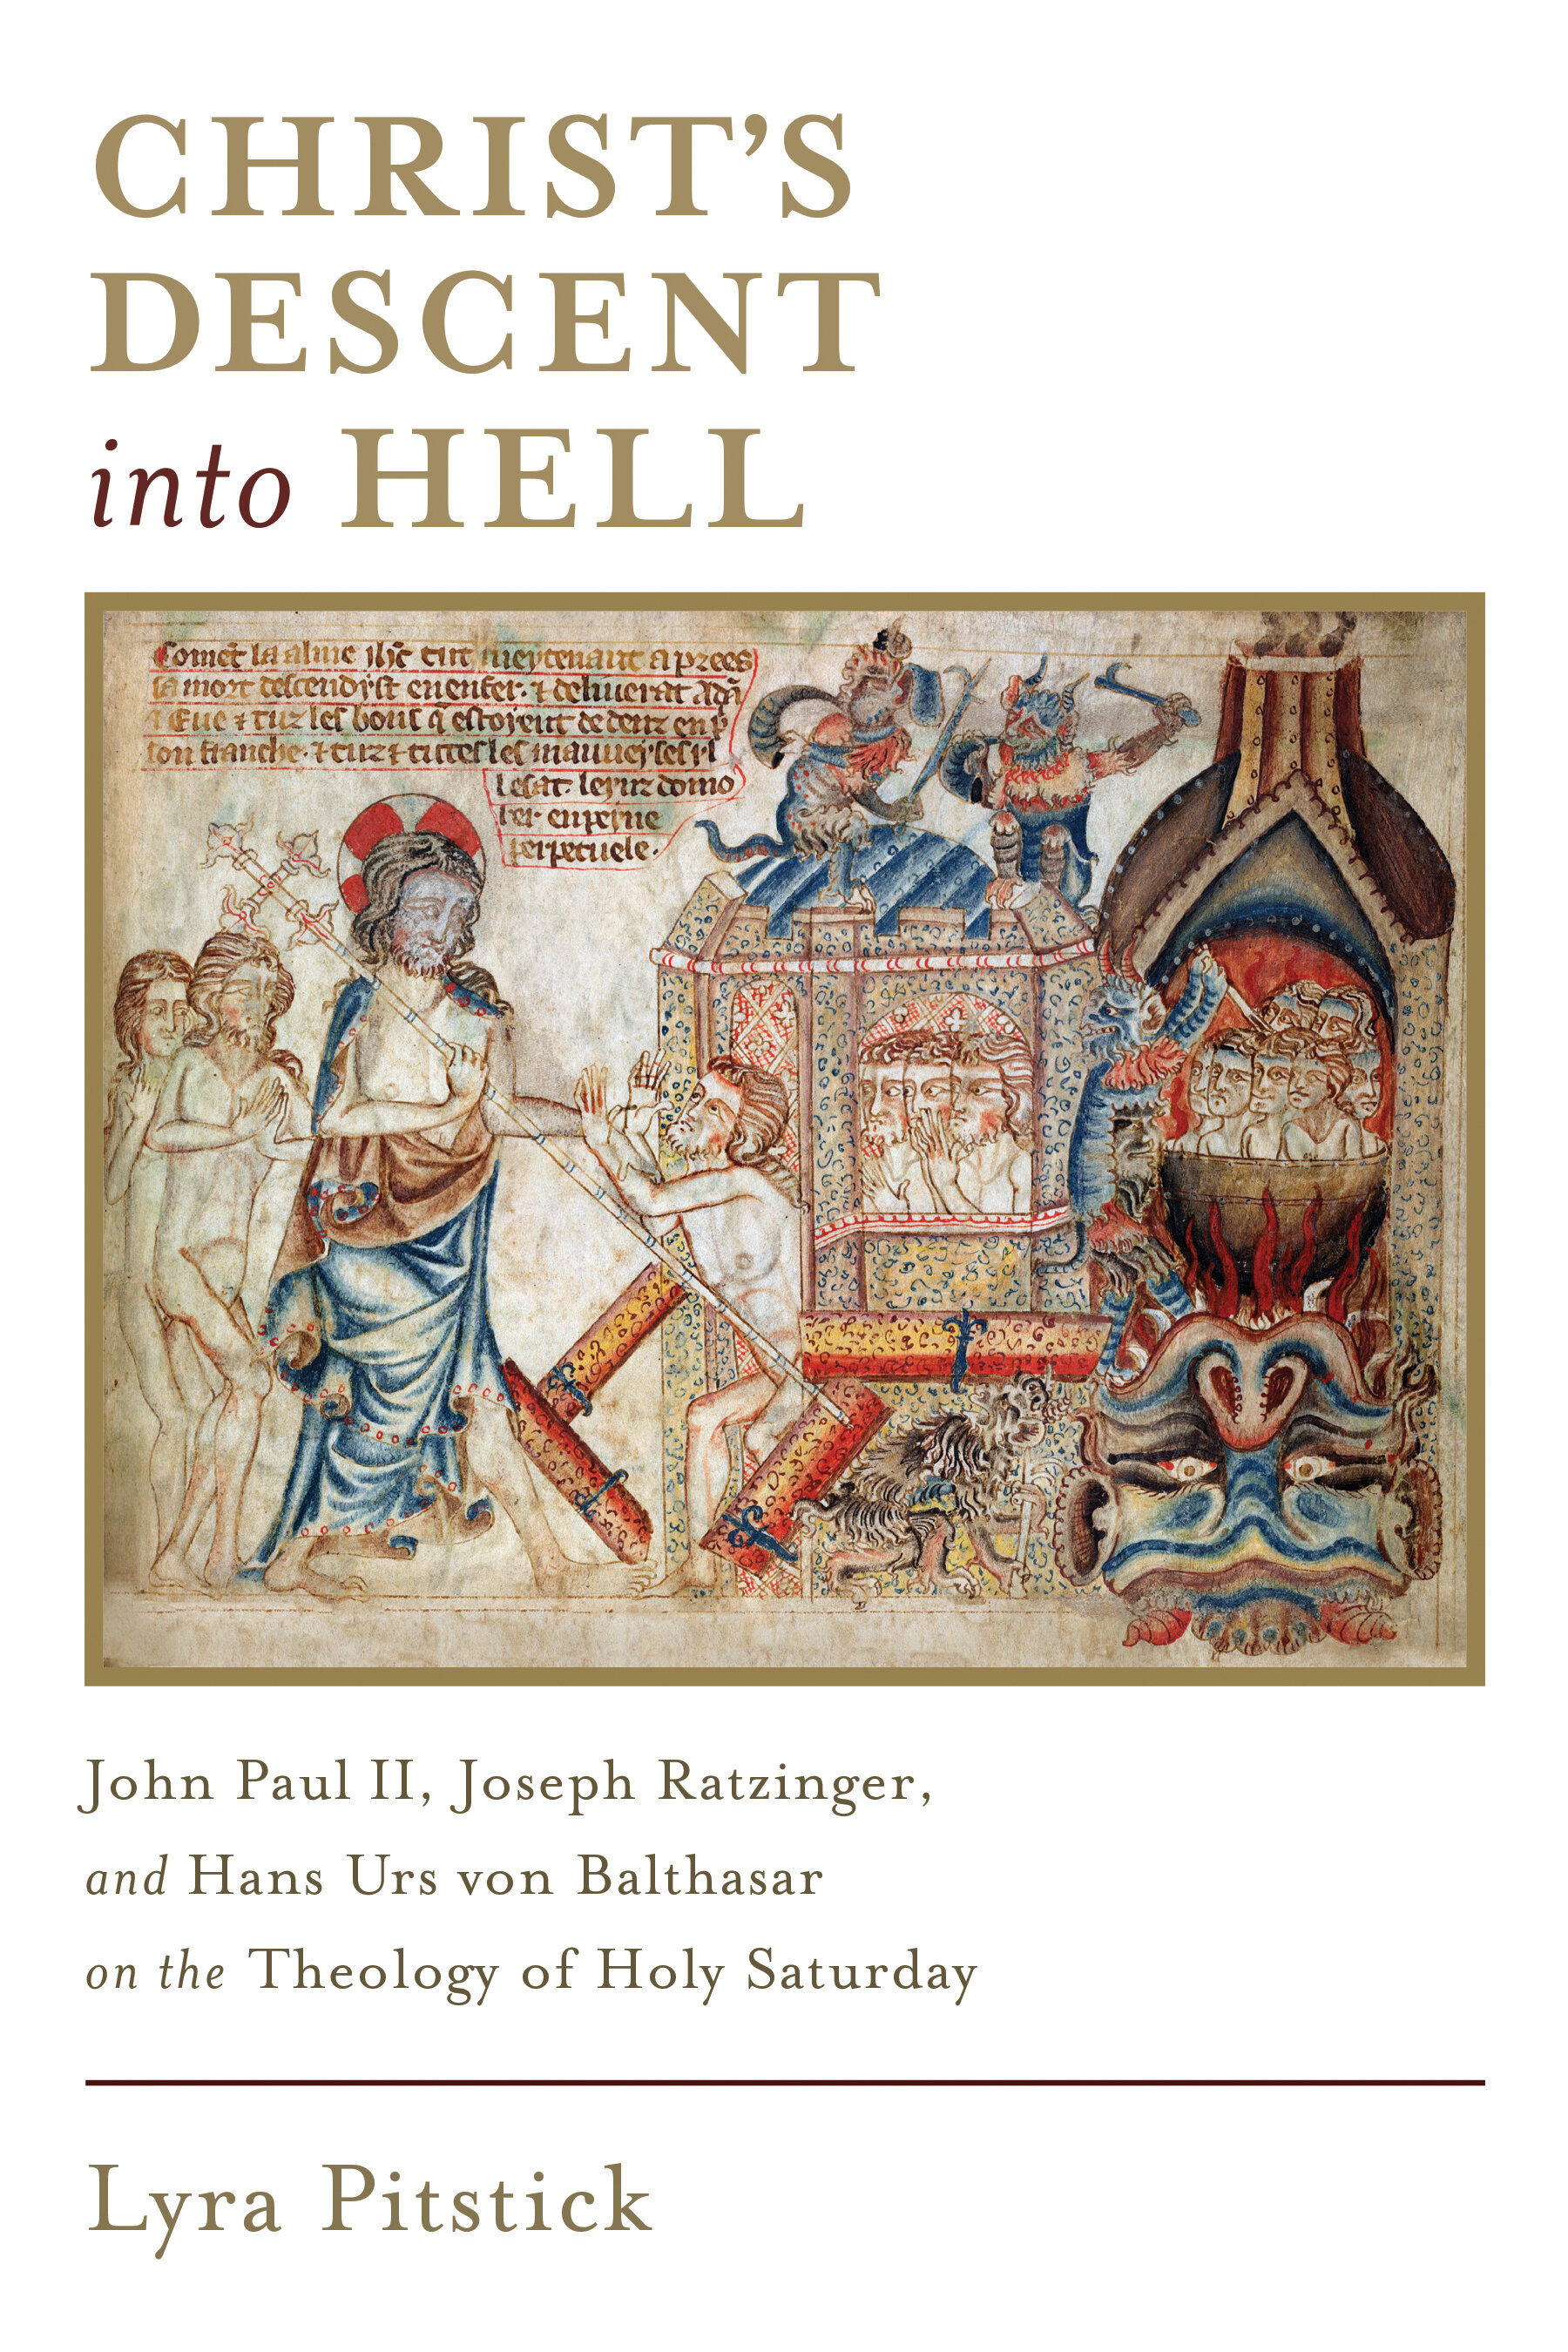 Christ's Descent into Hell: John Paul II, Joseph Ratzinger, and Hans Urs von Balthasar on the Theology of Holy Saturday